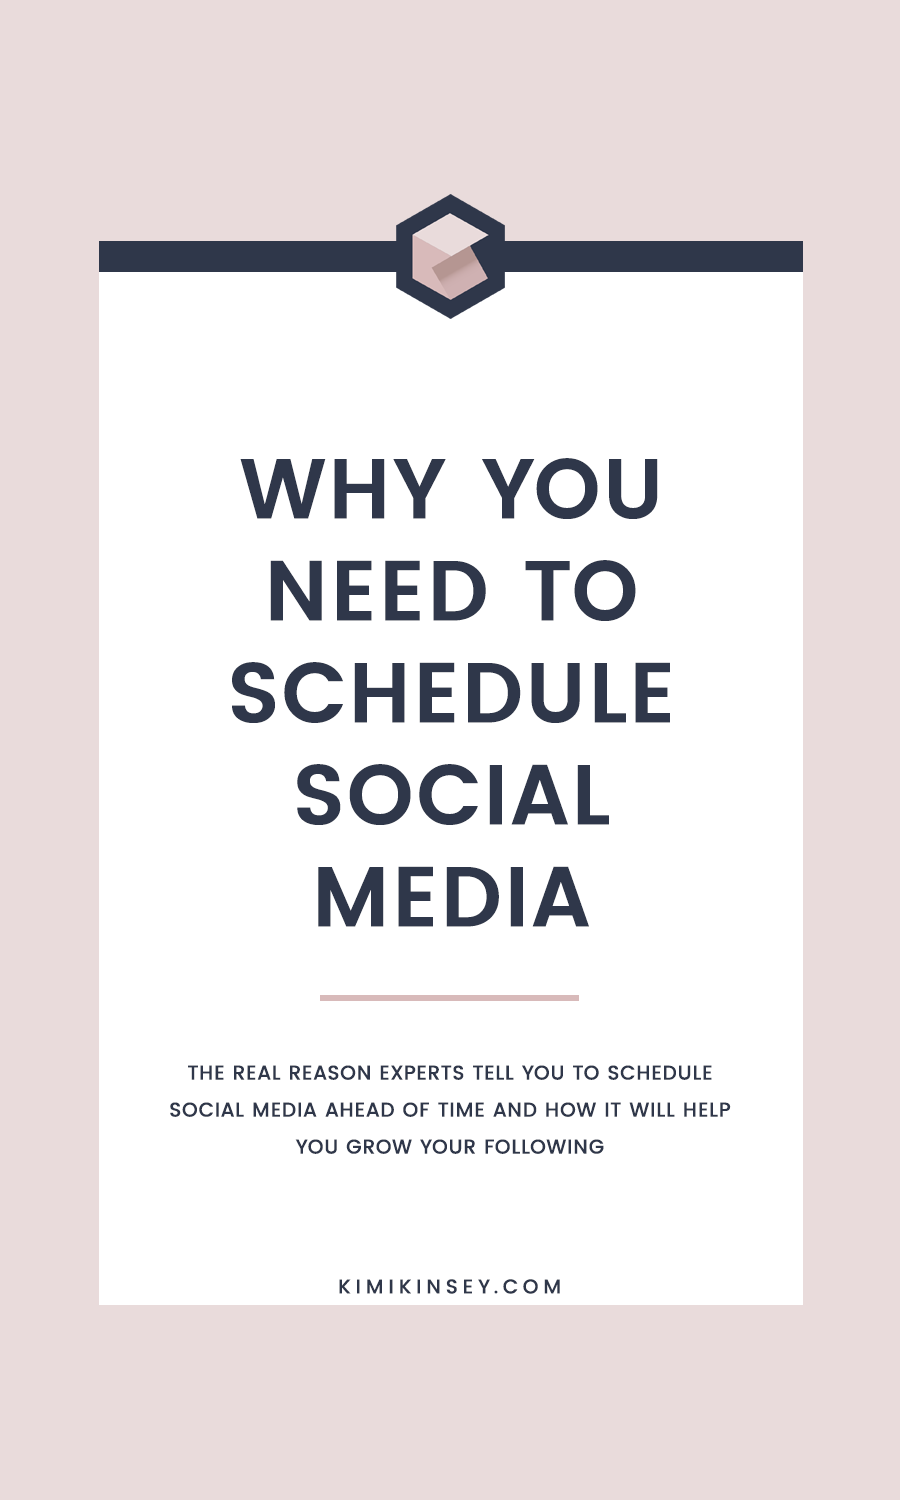 Why you need to schedule social media